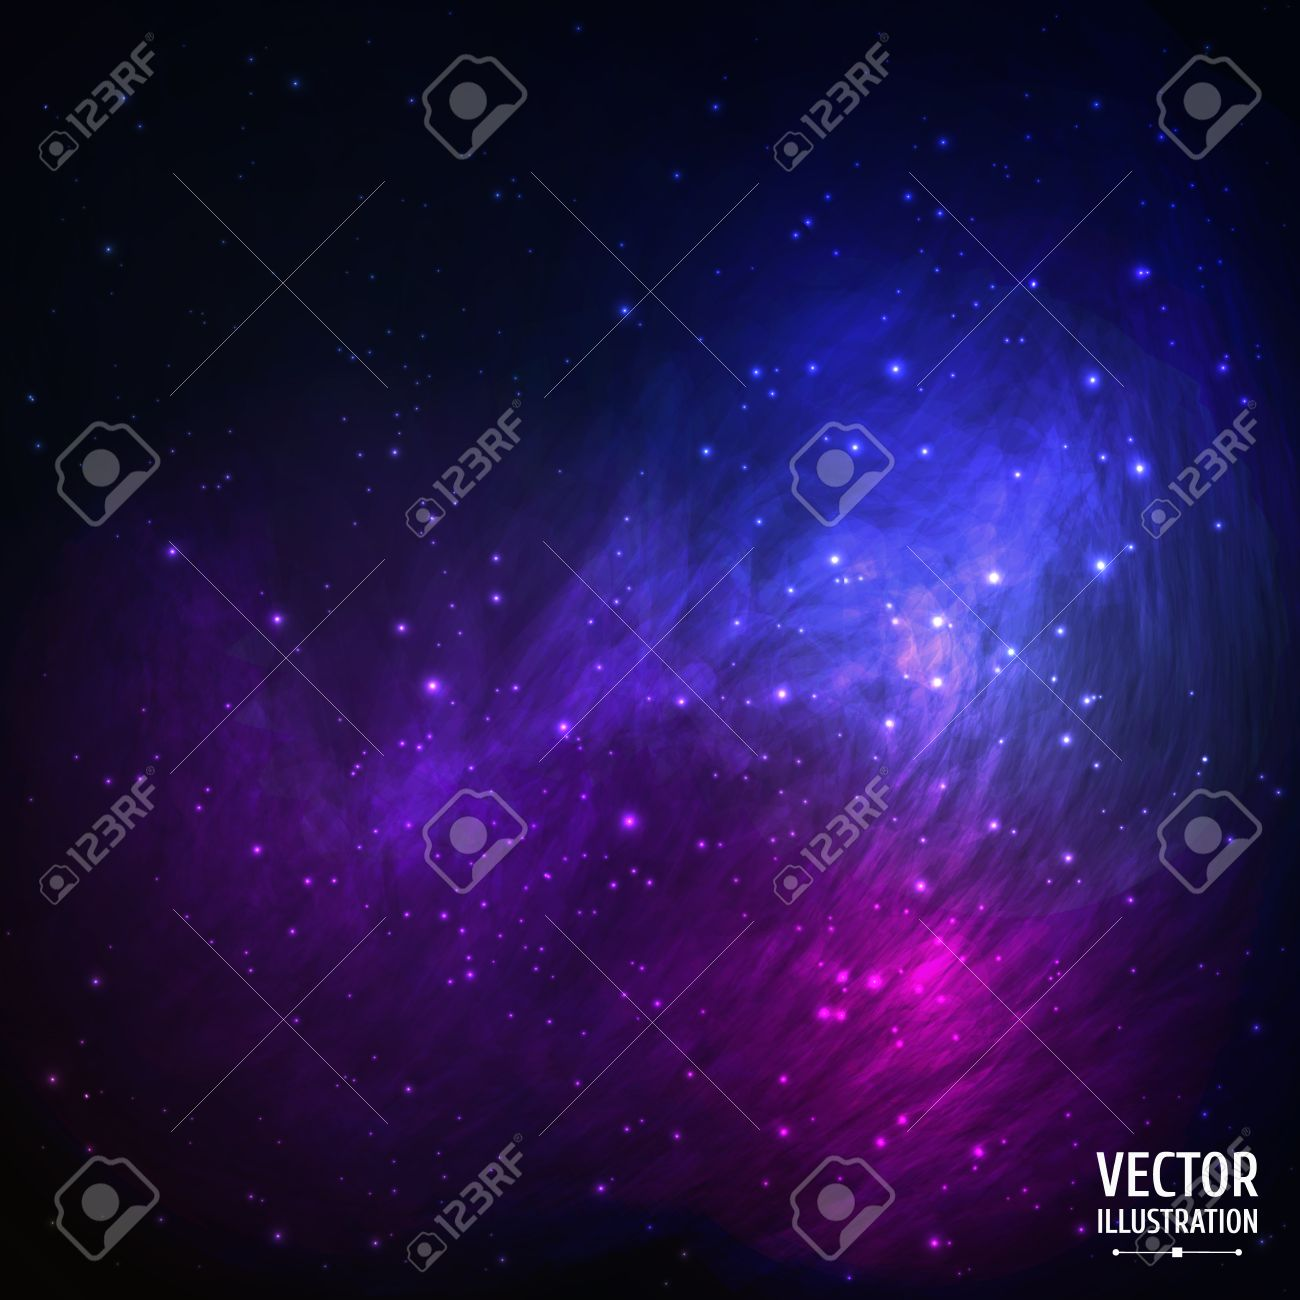 Colorful Space Galaxy Background with Light, Shining Stars, Stardust and Nebula. Vector Illustration for artwork, party flyers, posters, banners. - 34647761